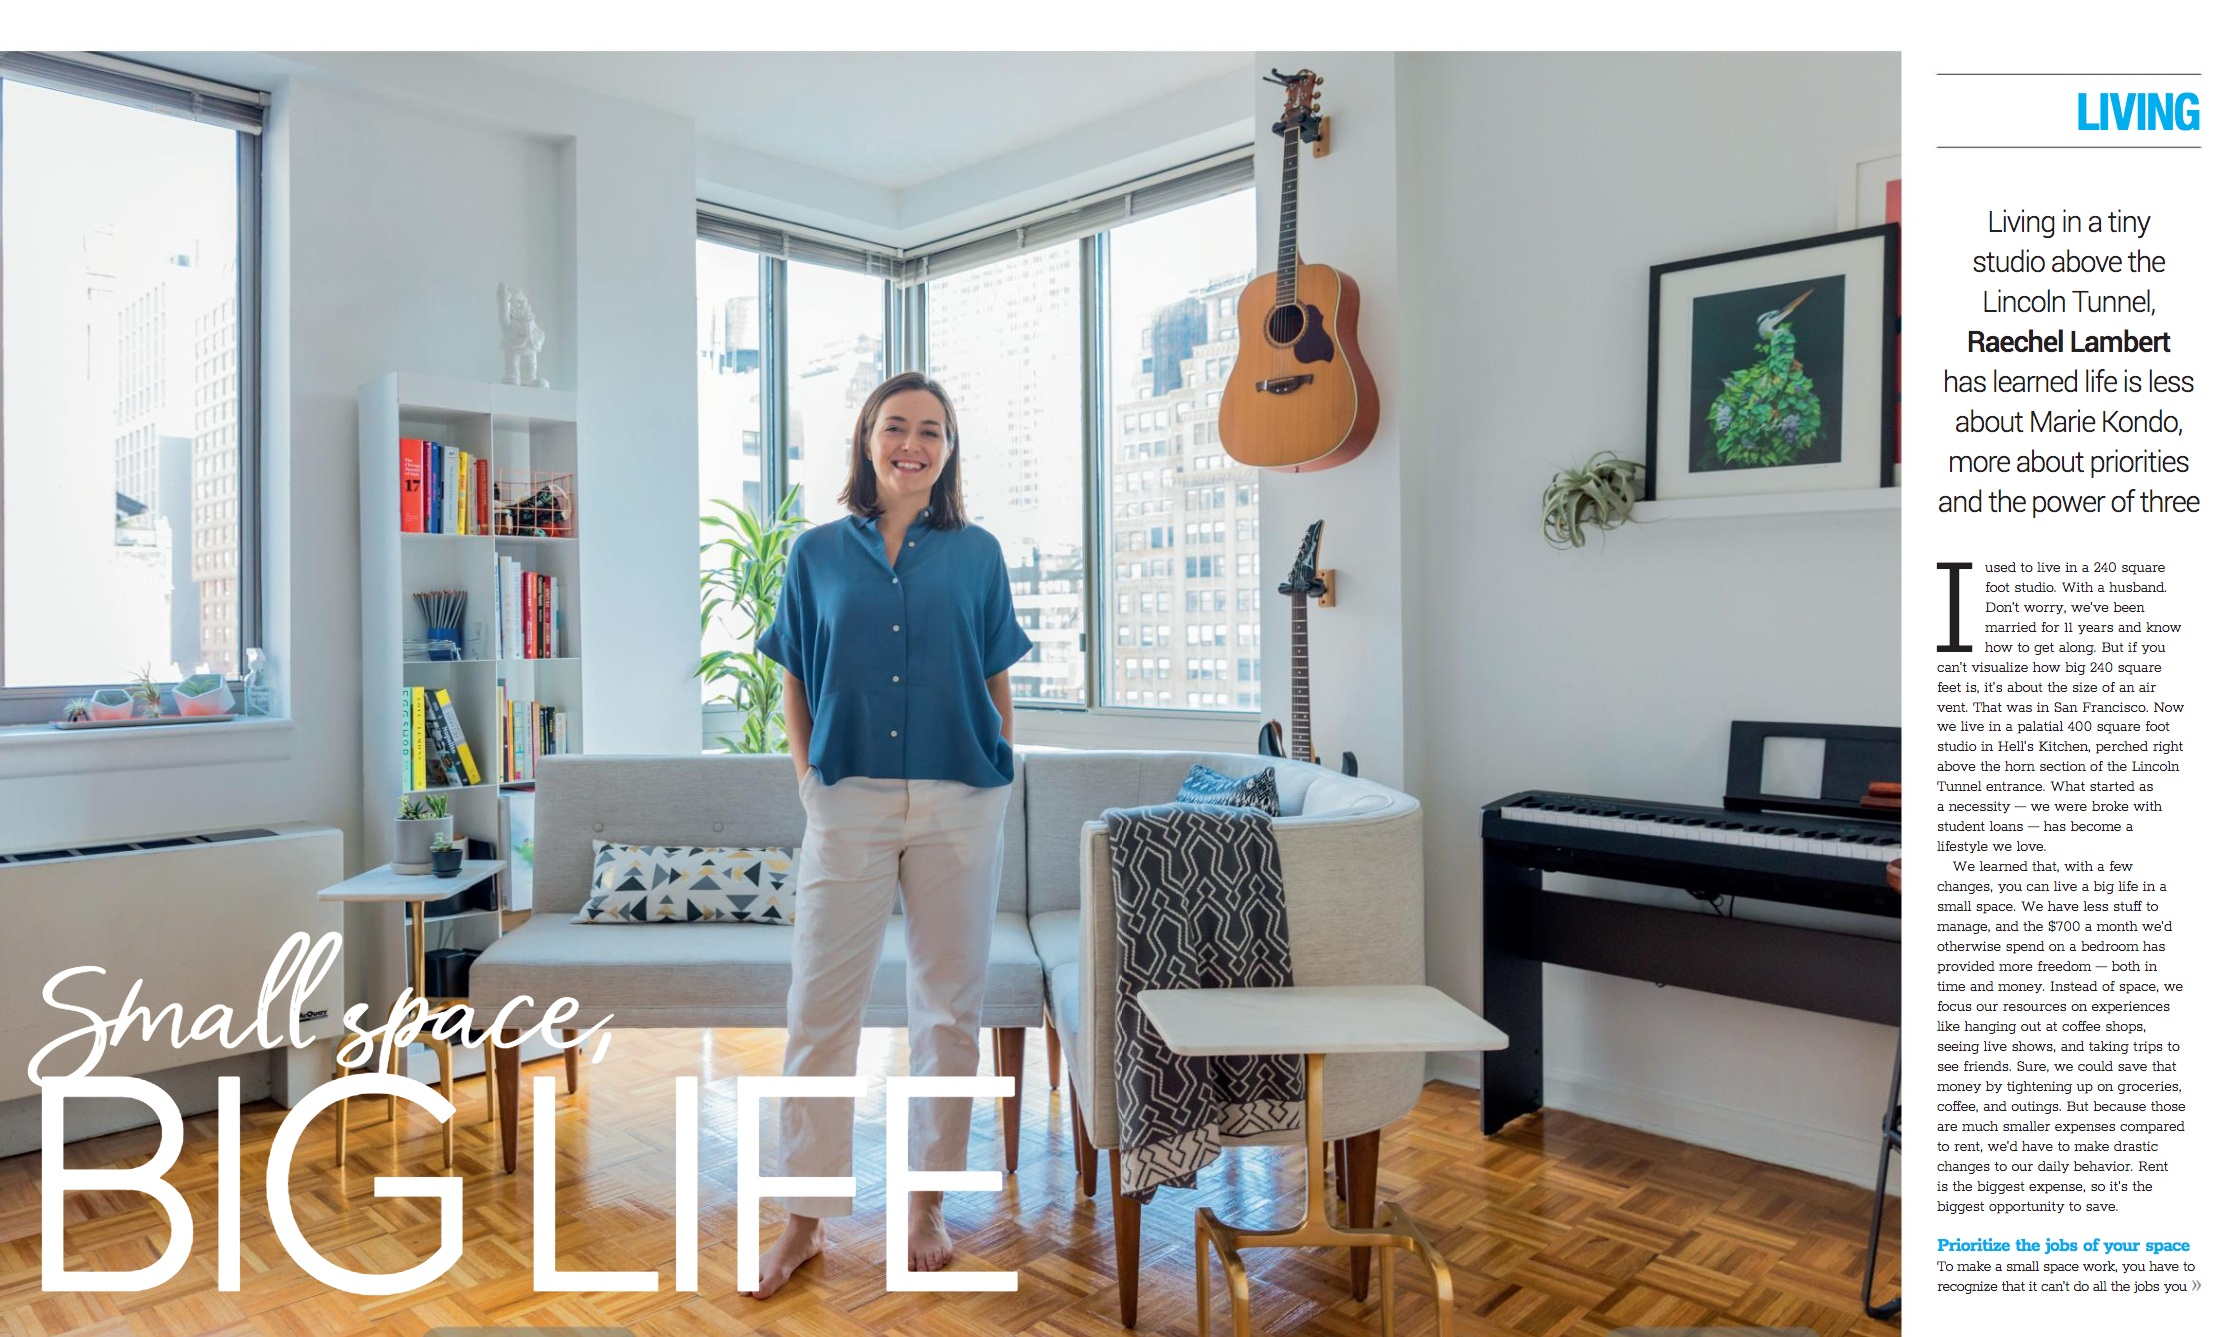 Small Space, Big Life - Article in w42st